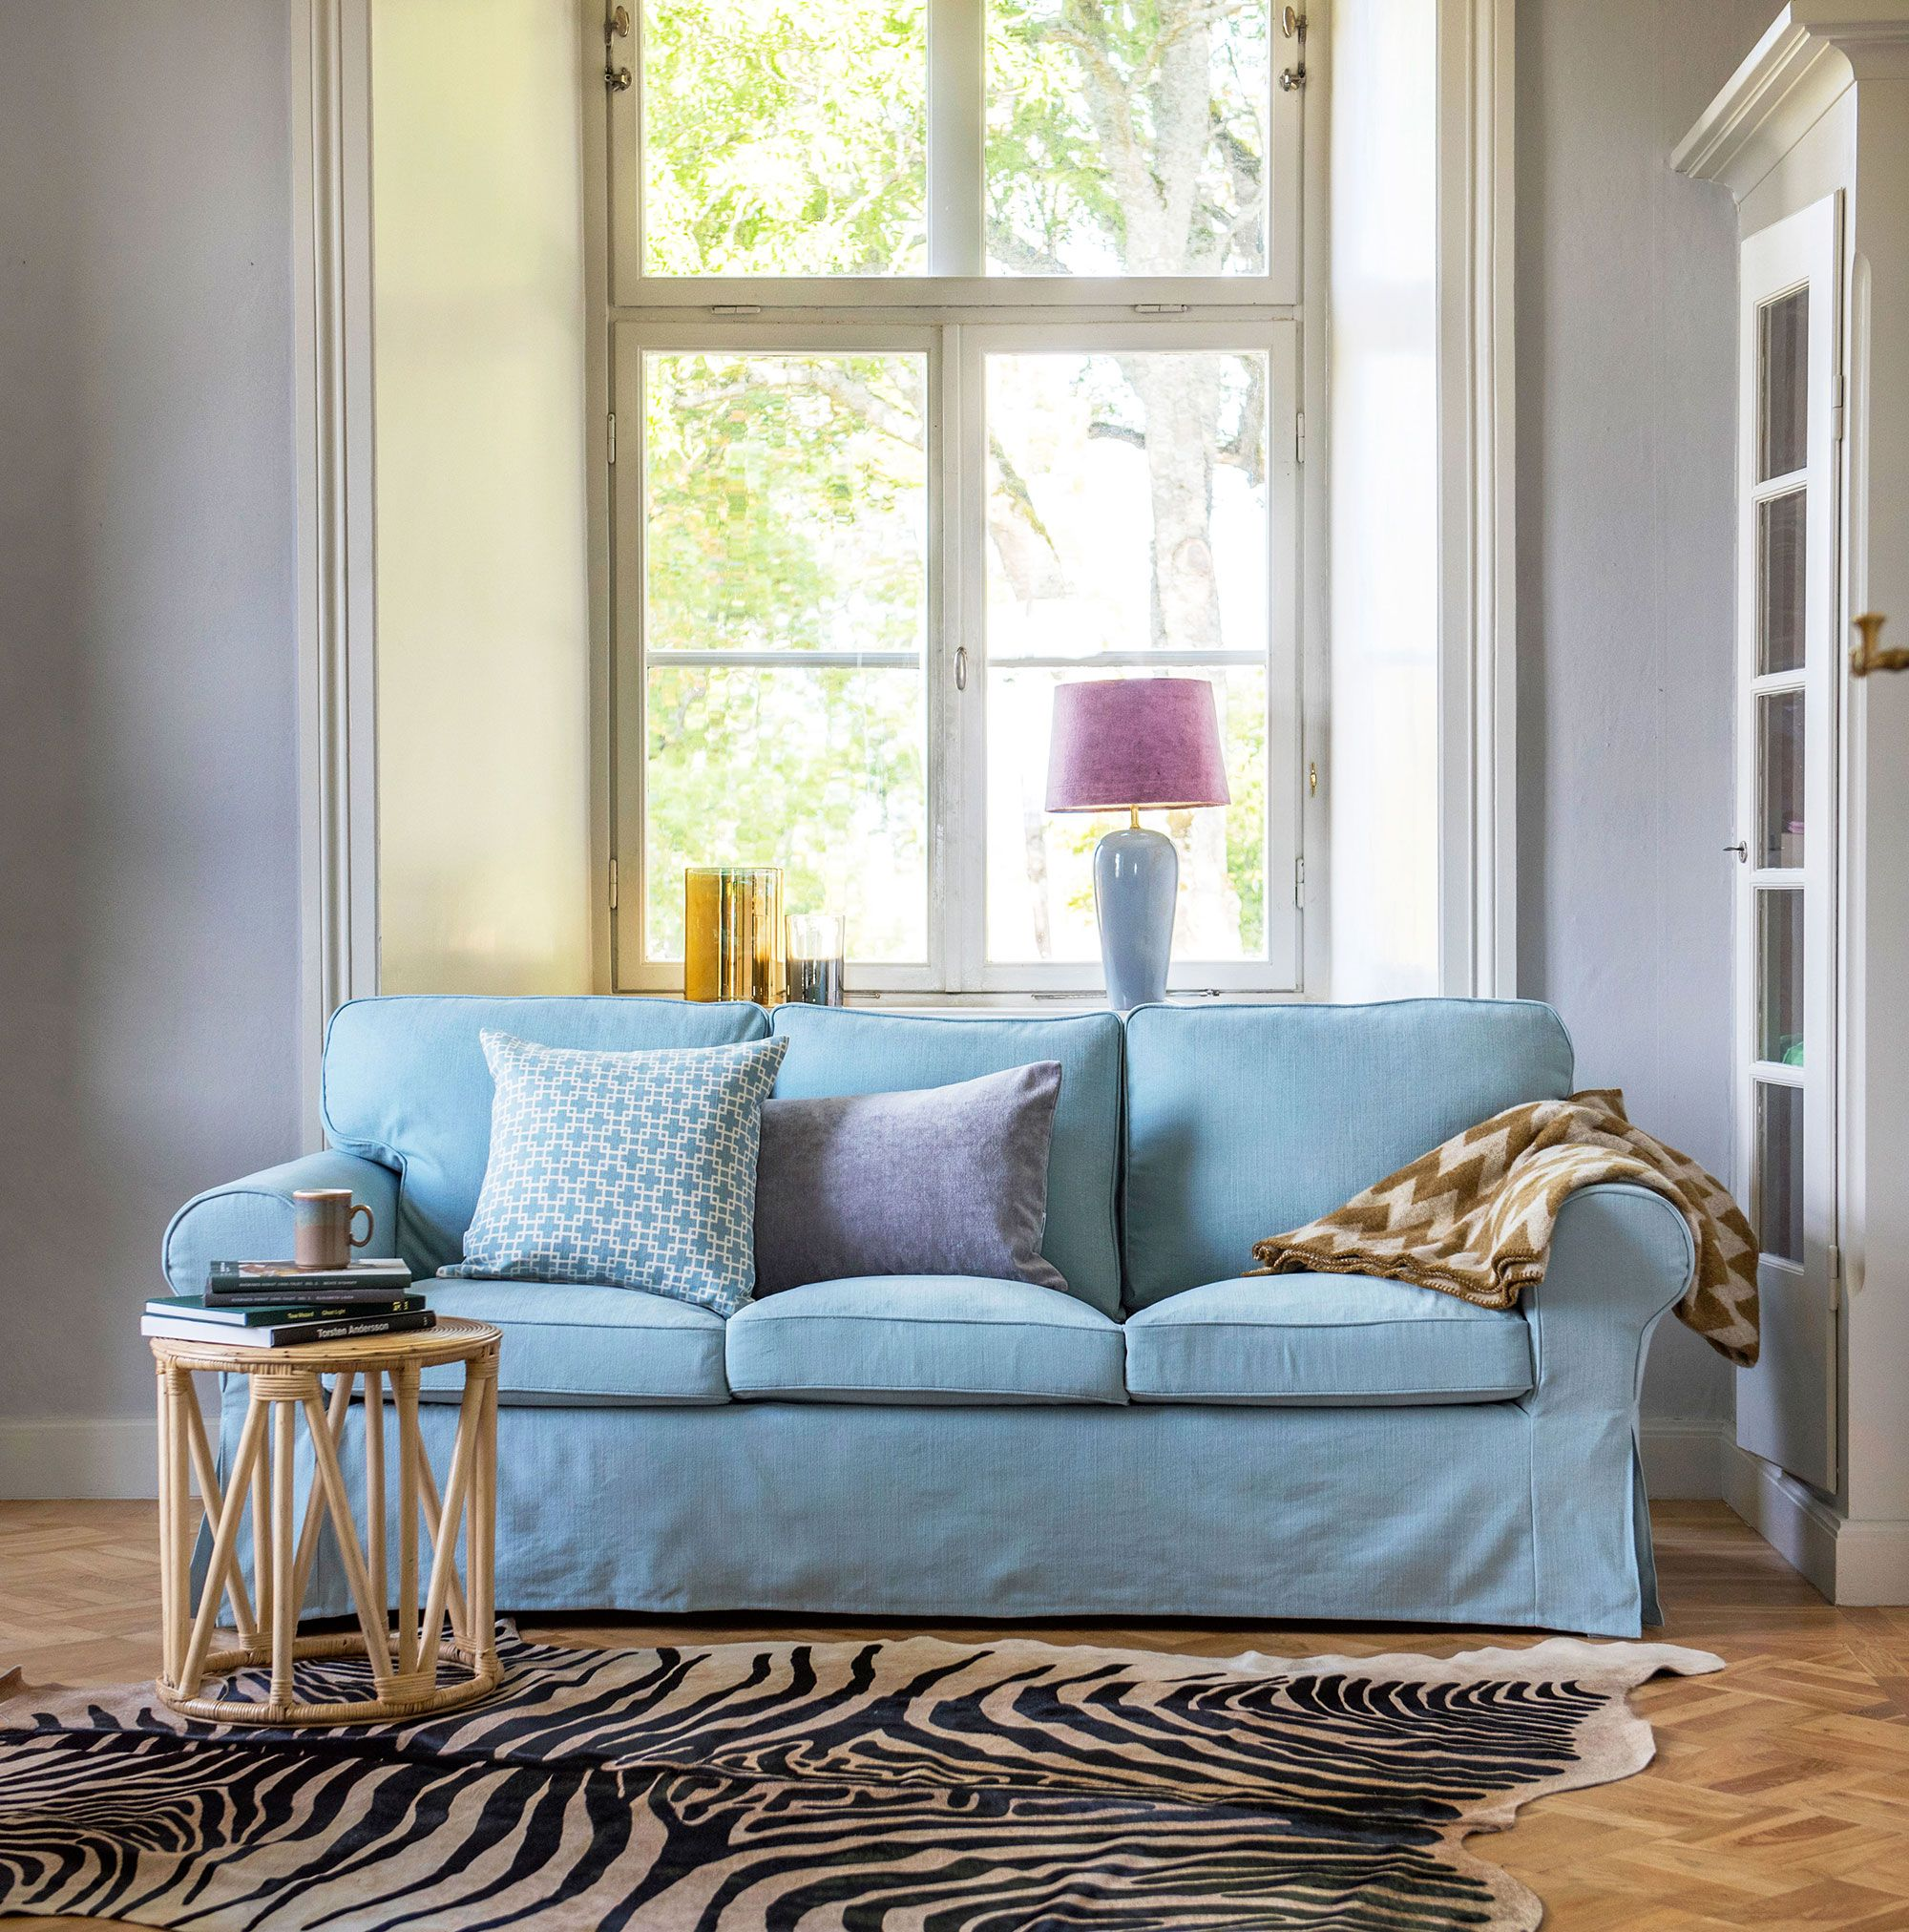 Baby Blue | Light Blue Sofa With A Faux Zebra Skin Rug | Vintage Rattan  Side Table | Seen Here: An IKEA Ektorp 3 Seater Sofa With A Bemz Cover In  Tourmaline ...